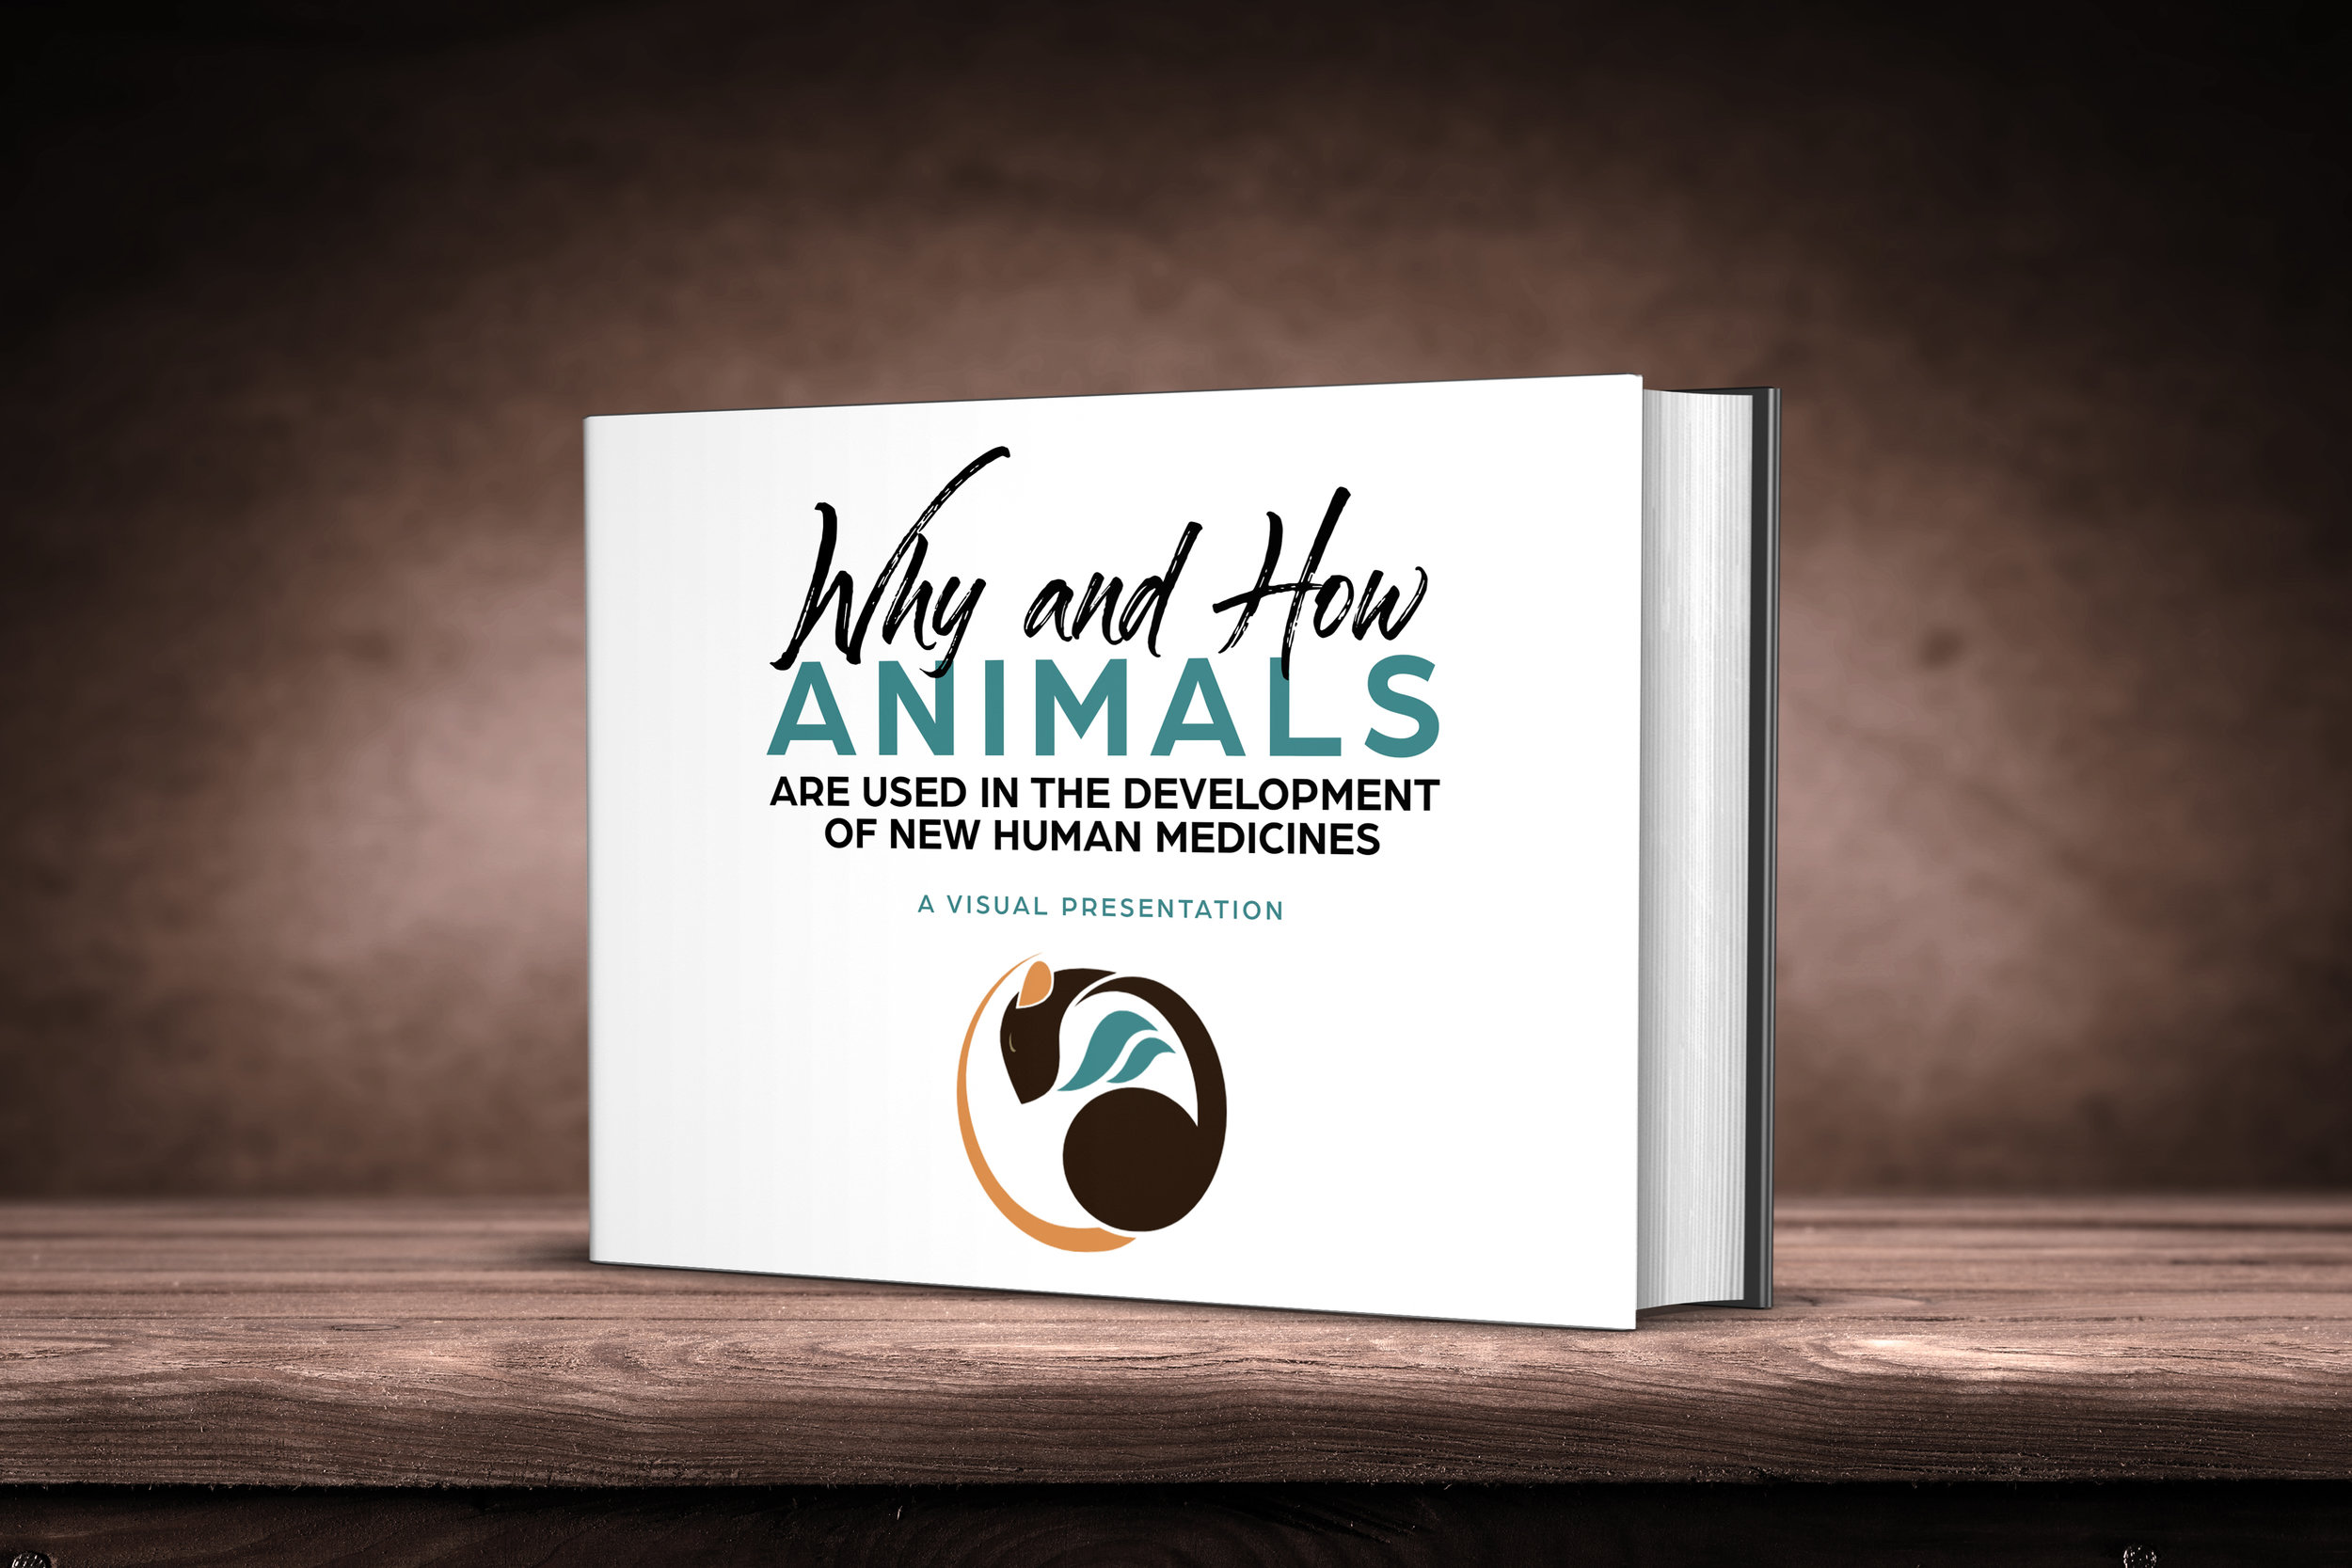 New & unique - A balanced, visual presentation on the role of animals in the development of new human medicines. Contact us for details: info@wilifesciences.com